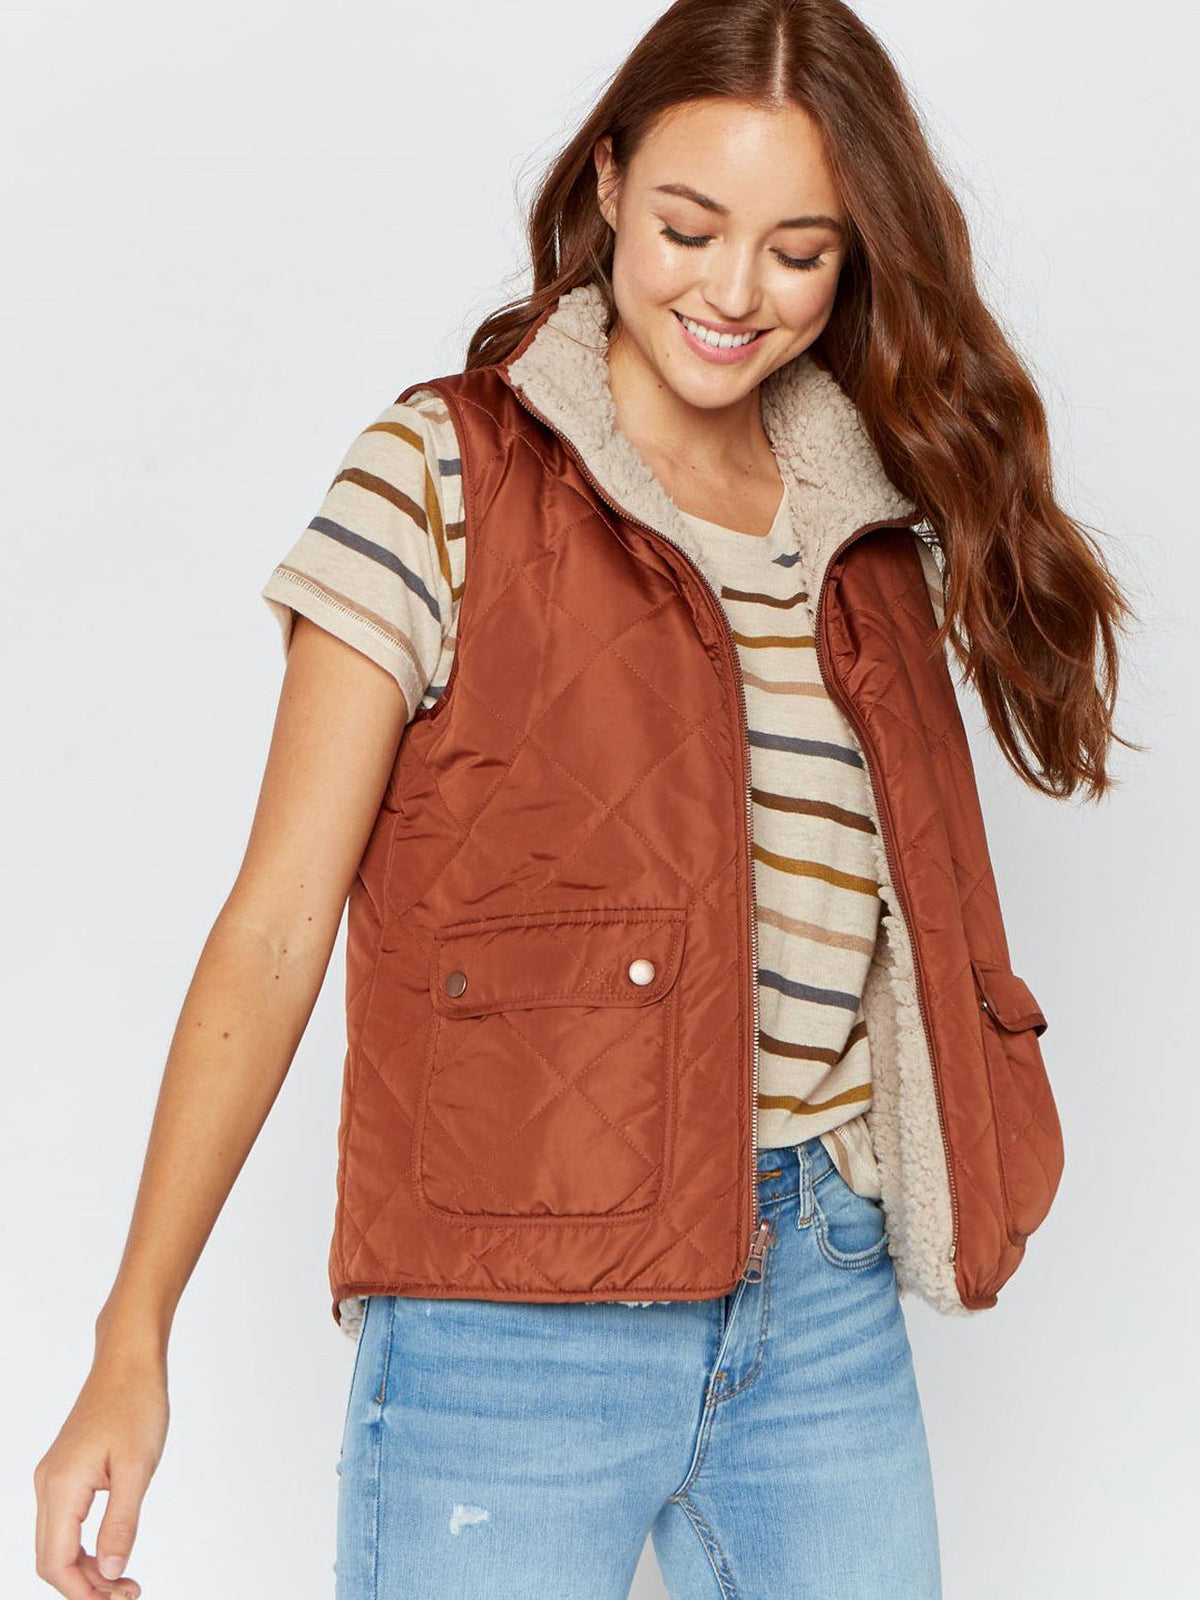 Park City Vest Vests Thread & Supply